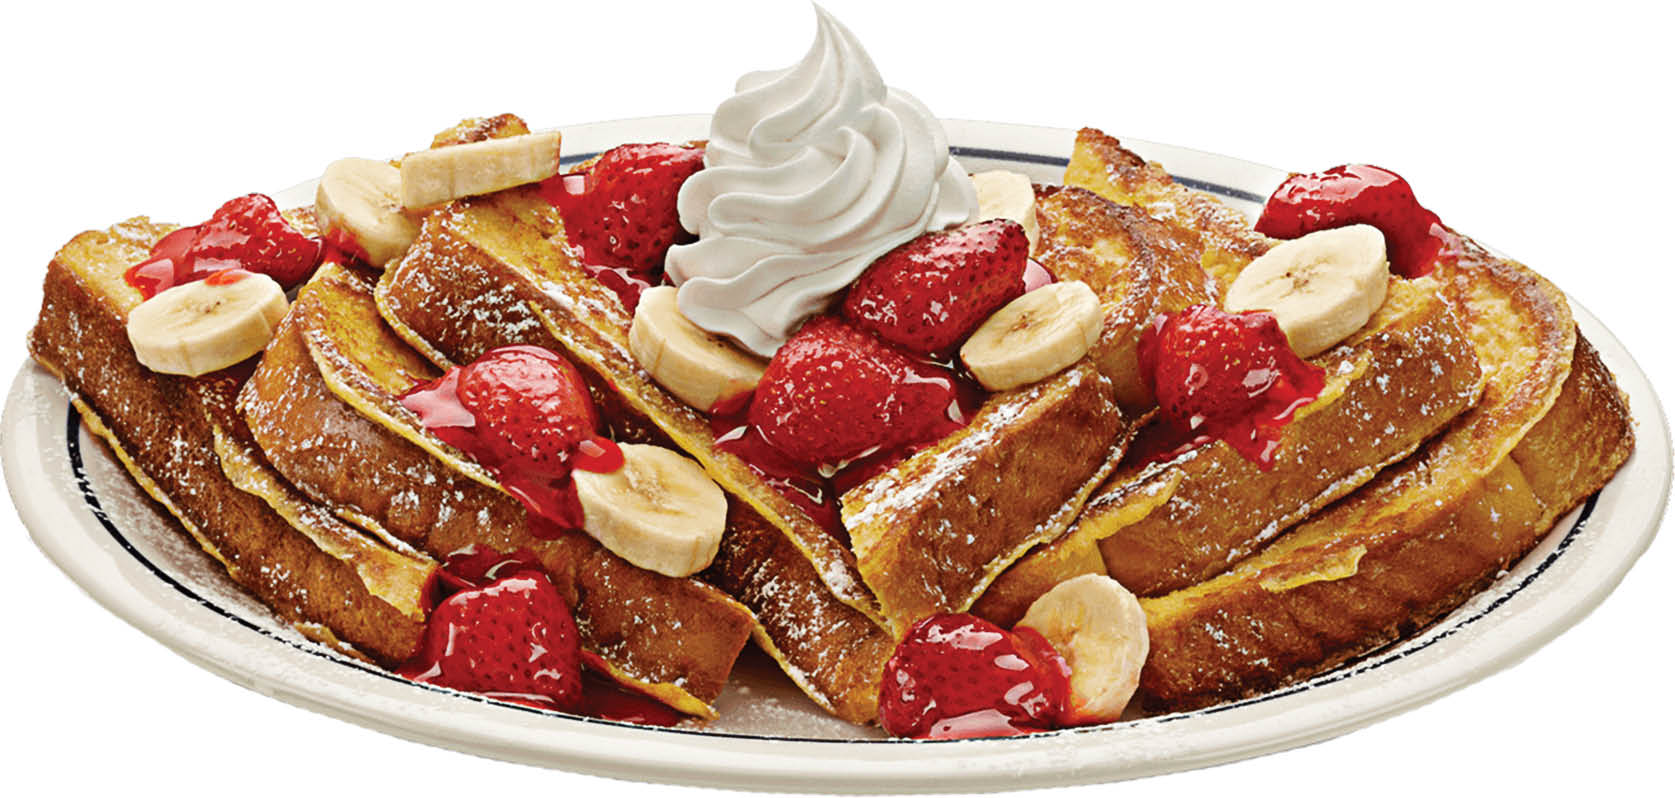 Strawberry French Toast served at Black Oak Grill.